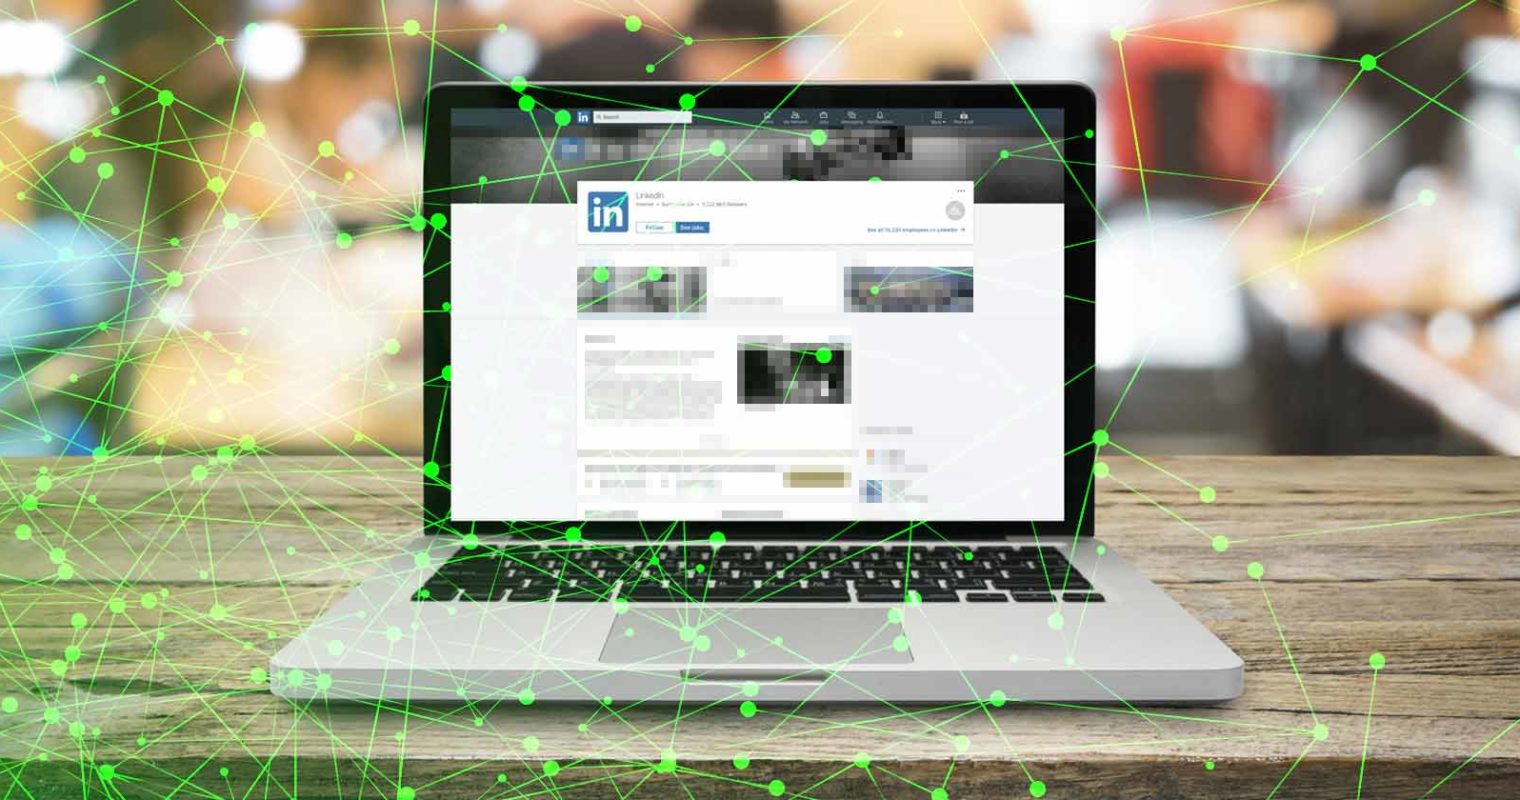 3 Steps to Leverage LinkedIn for Link Building